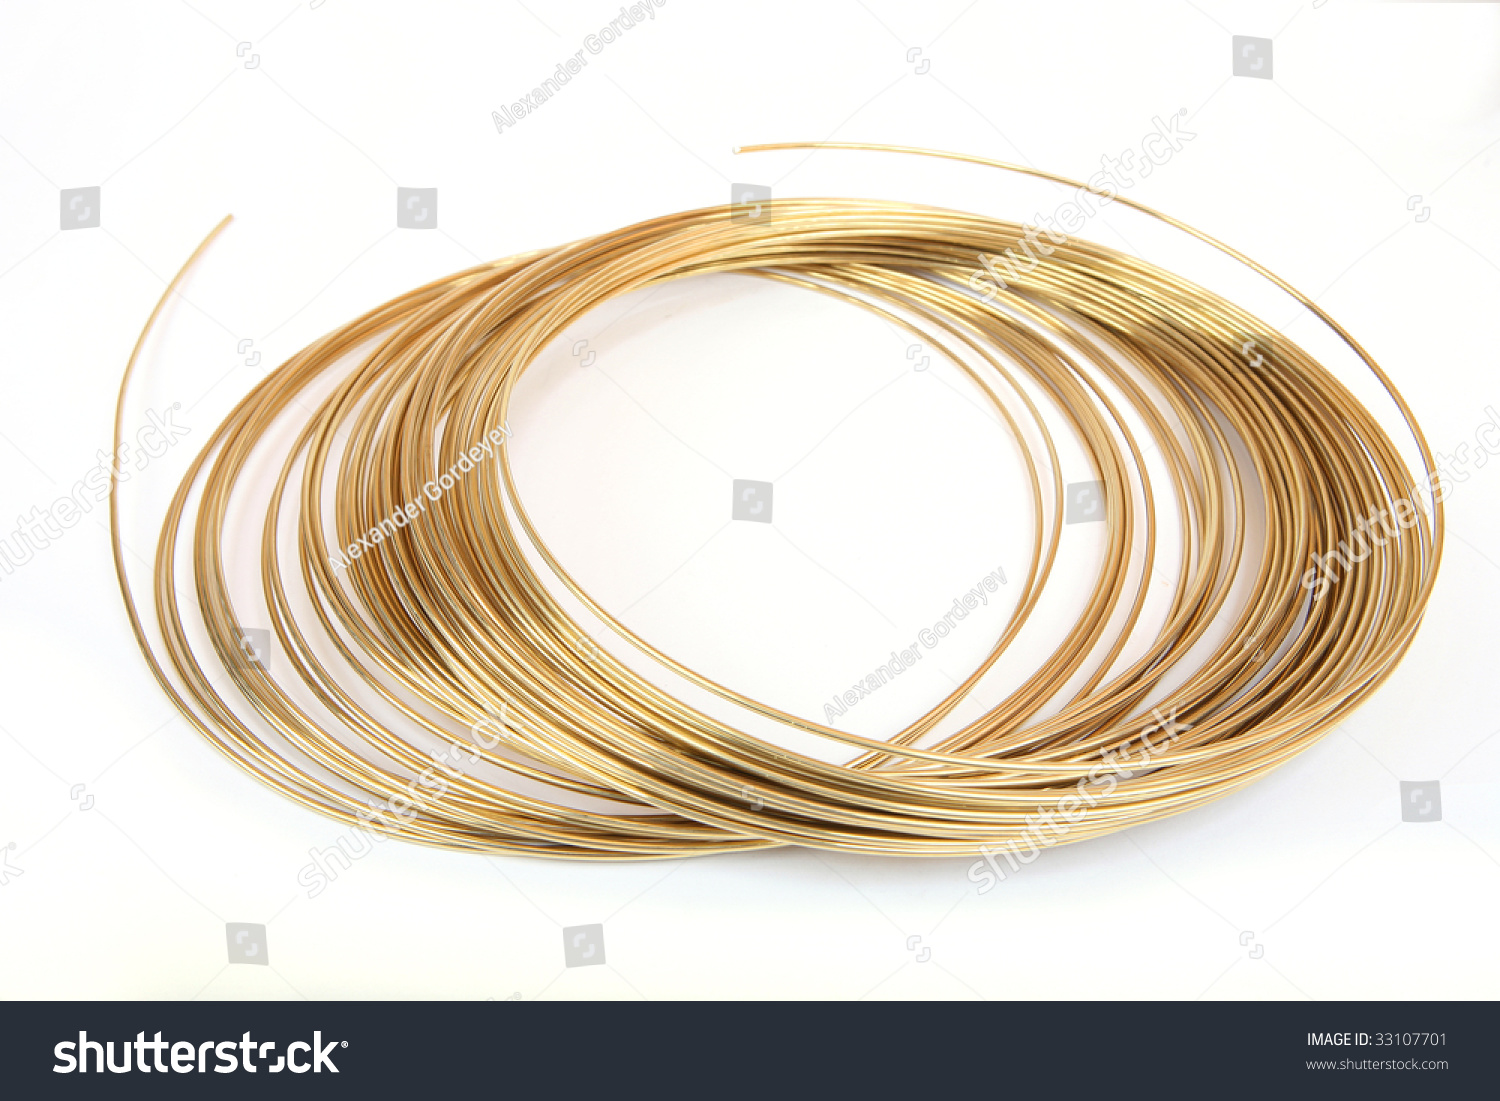 Solder Wire On White Background Stock Photo (Royalty Free) 33107701 ...